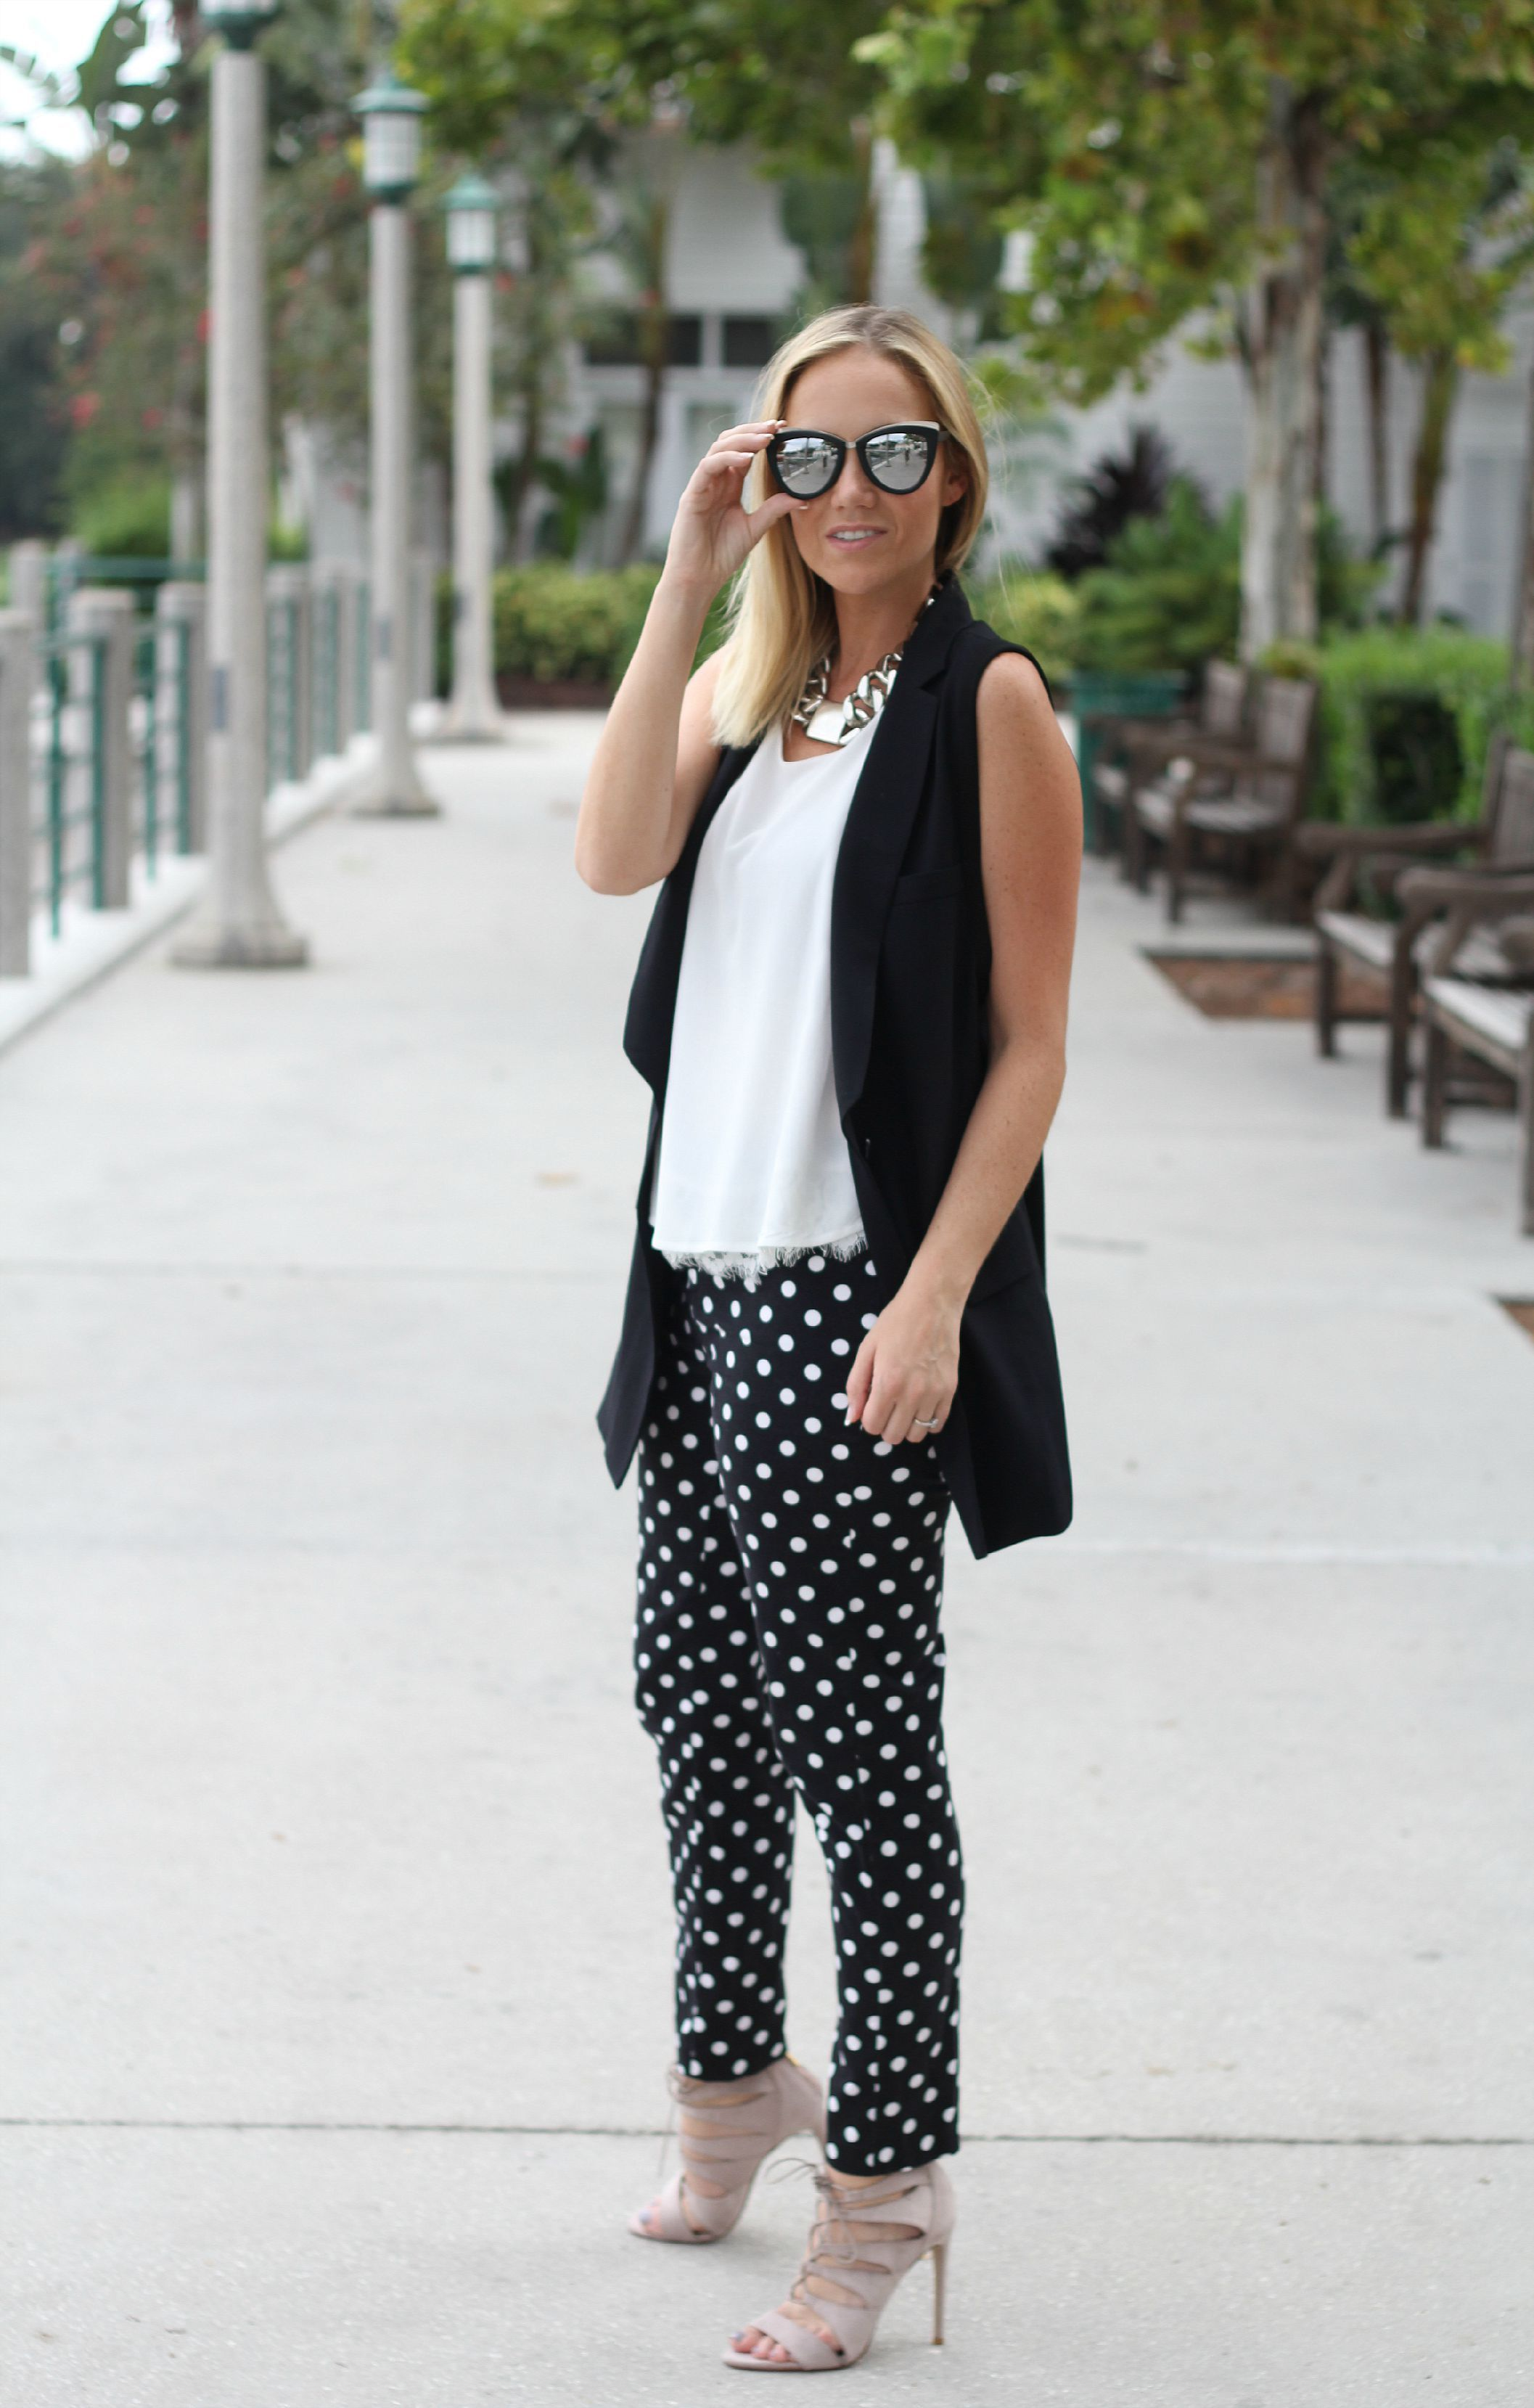 18f5bcc6dfc How To Wear Polka Dot Pants